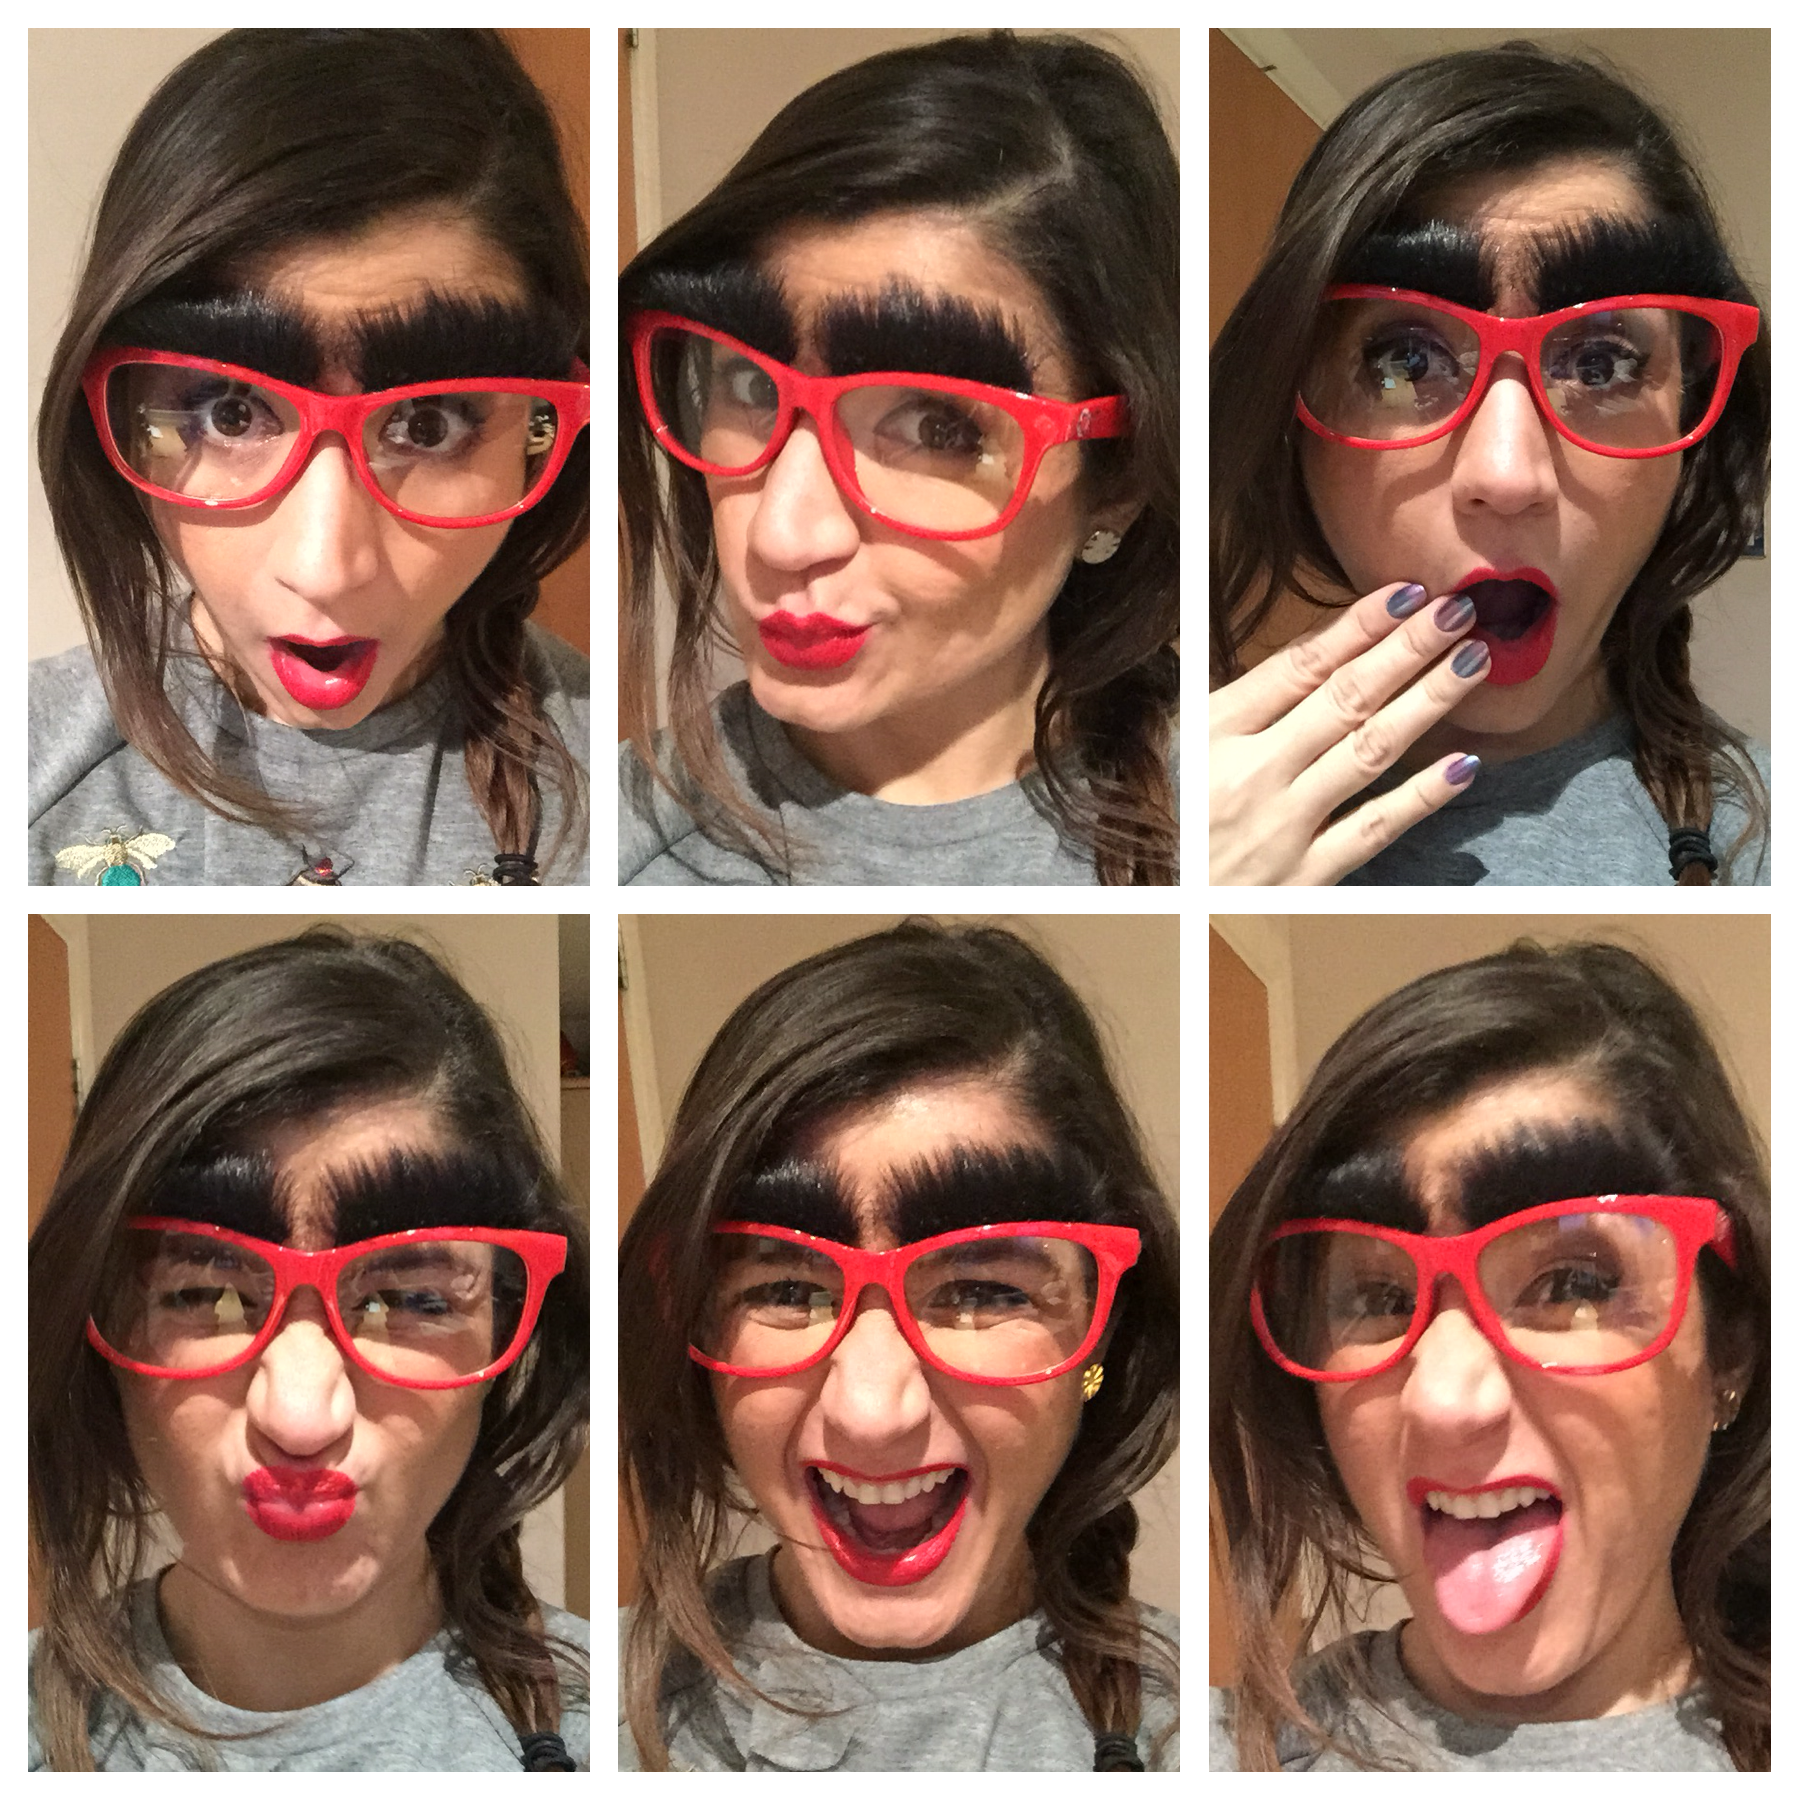 a329597277 Specsavers Red Nose Day Glasses for Comic Relief – Make your Face ...